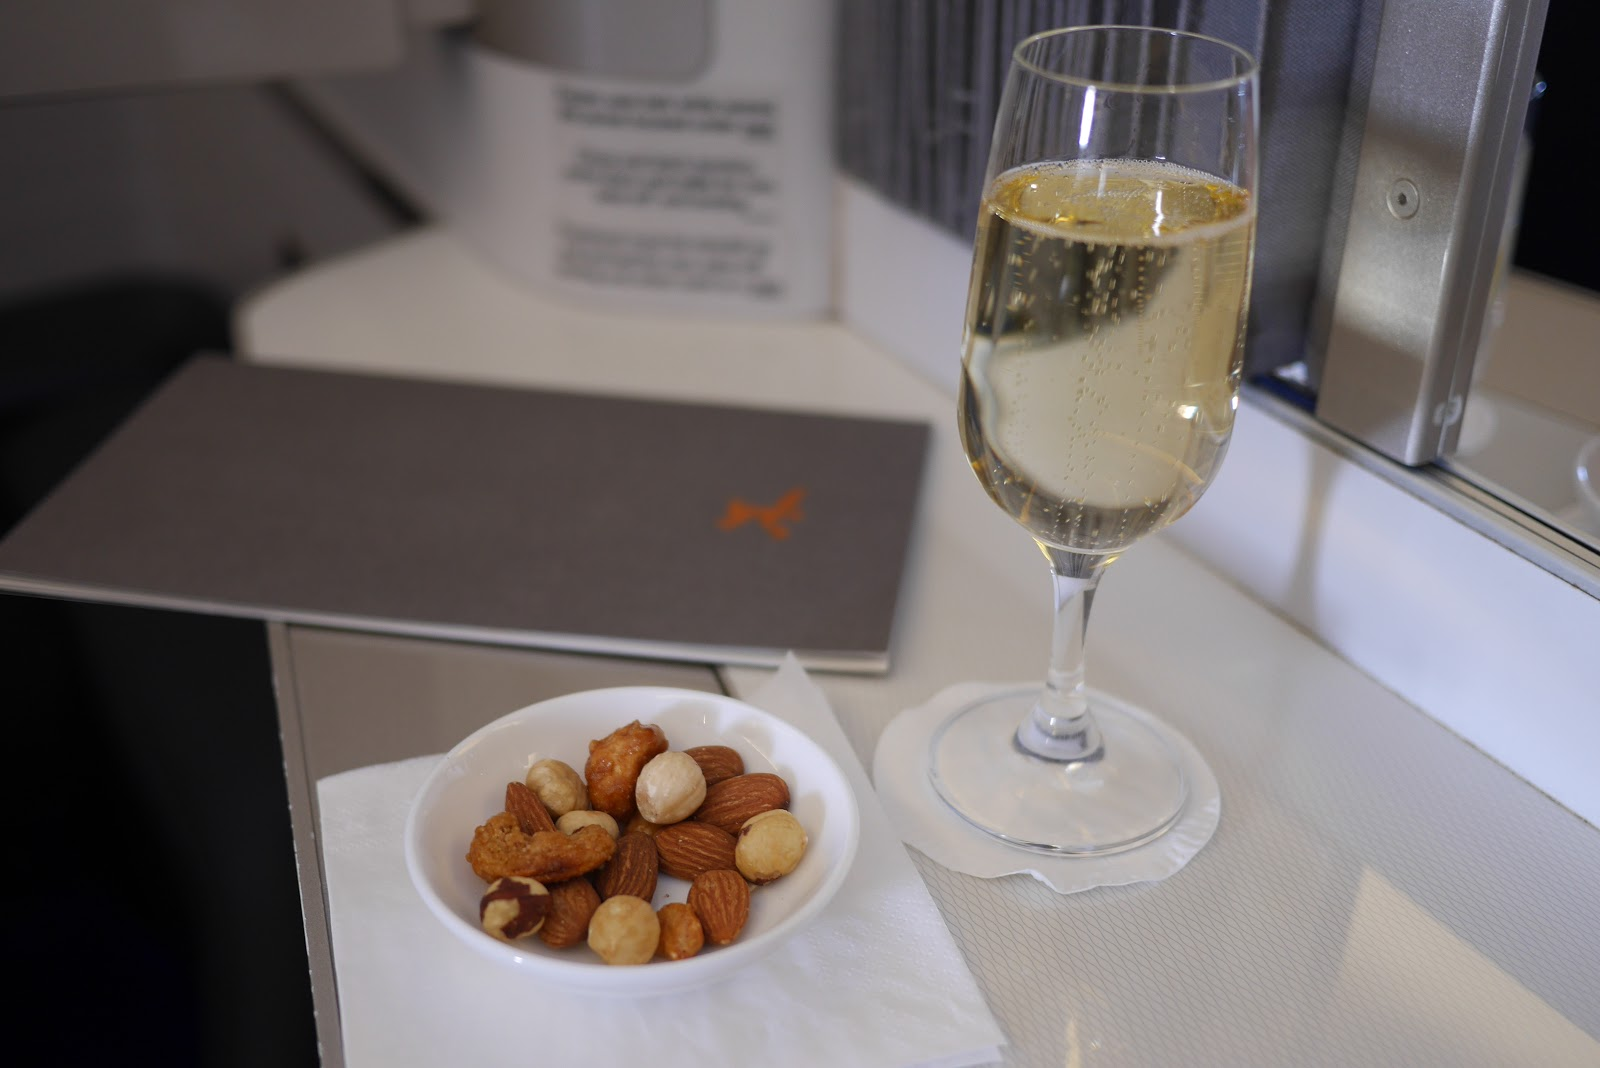 Review of British Airways First Class flight from London Gatwick in 2018 by www.CalMcTravels.com